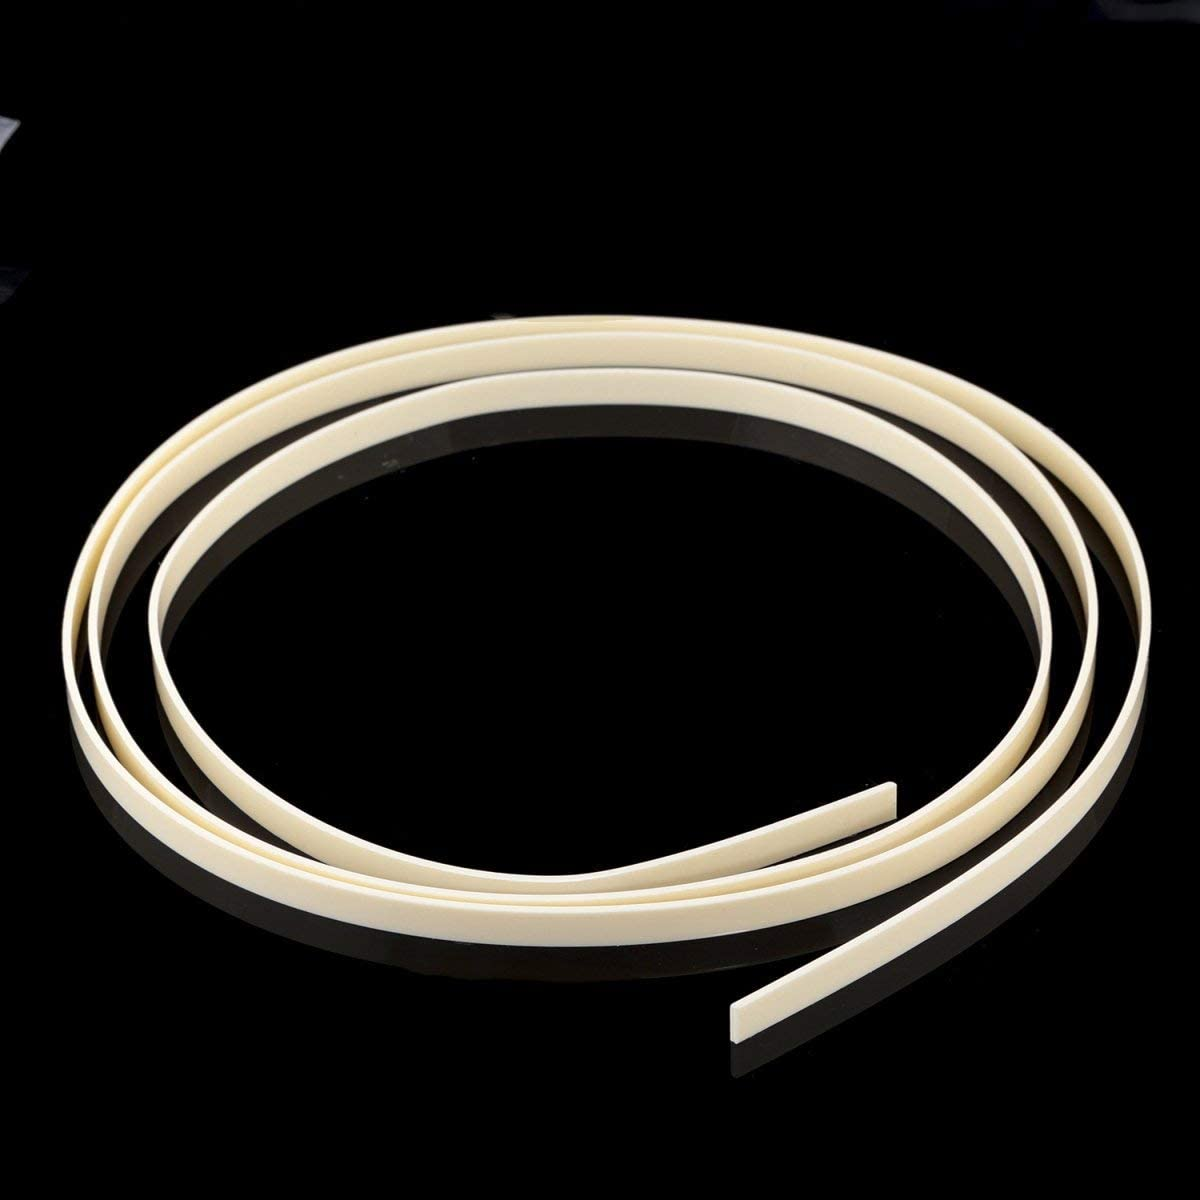 Musiclily Max 42% OFF 1650x7x1.5mm Plastic Binding Acoust for Purfling Strip OFFicial site